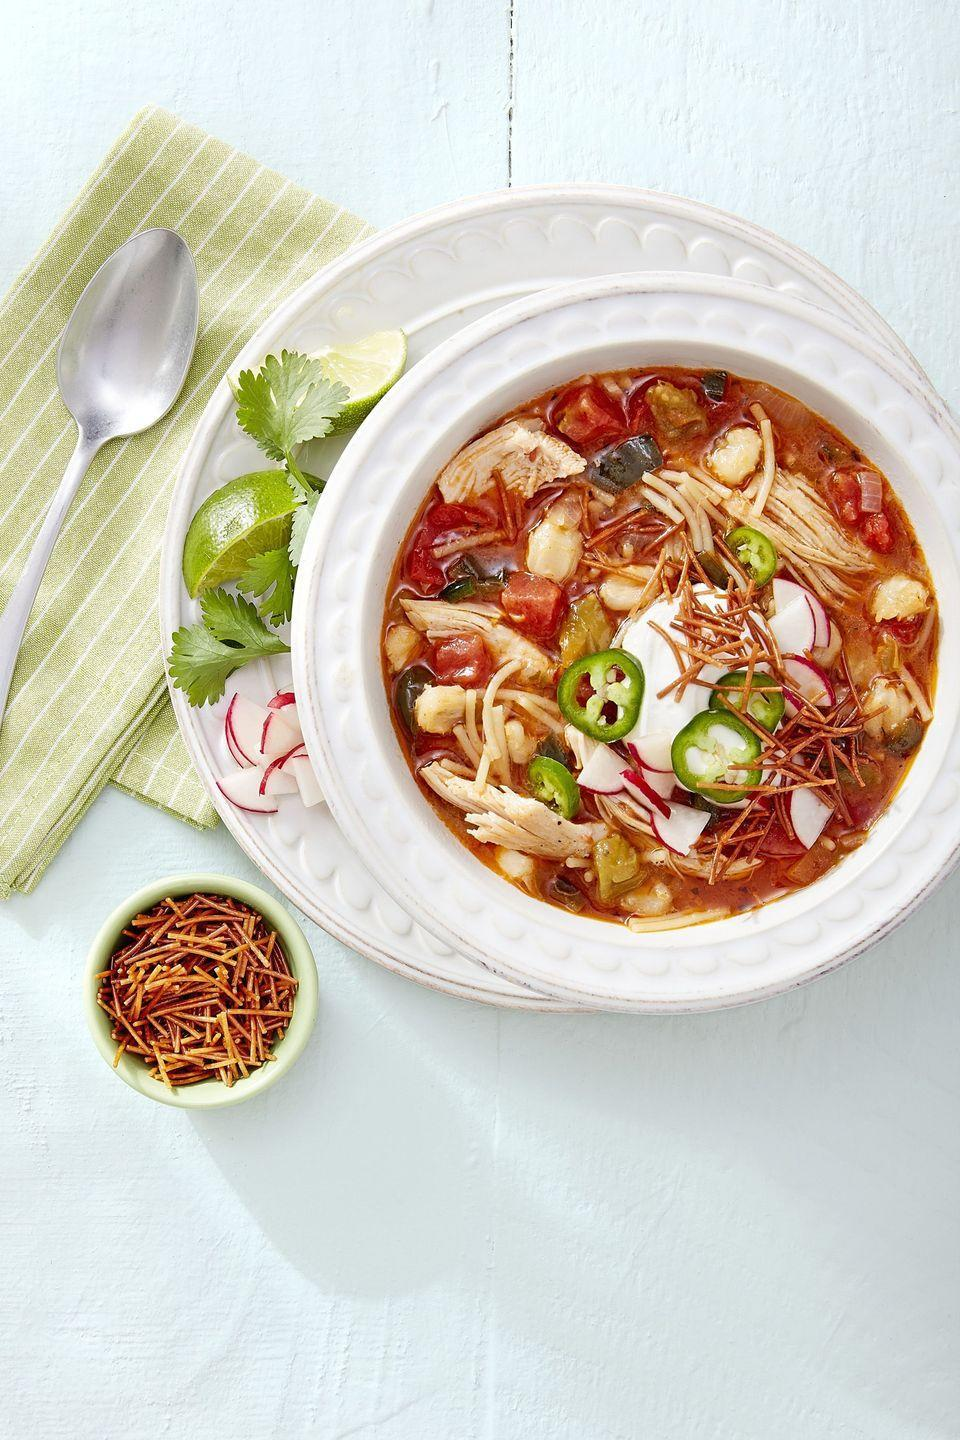 """<p>Sometimes you have to stick to tradition — and this posole is the crème de la crème.</p><p><a href=""""https://www.countryliving.com/food-drinks/a16571302/chicken-and-fideo-posole-recipe/"""" rel=""""nofollow noopener"""" target=""""_blank"""" data-ylk=""""slk:Get the recipe from Country Living »"""" class=""""link rapid-noclick-resp""""><em>Get the recipe from Country Living »</em></a></p><p><strong>RELATED: </strong><a href=""""https://www.goodhousekeeping.com/food-recipes/easy/g26102687/instant-pot-soups/"""" rel=""""nofollow noopener"""" target=""""_blank"""" data-ylk=""""slk:20 Instant Pot Soups That Are Basically Comfort in a Bowl"""" class=""""link rapid-noclick-resp"""">20 Instant Pot Soups That Are Basically Comfort in a Bowl</a><br></p>"""